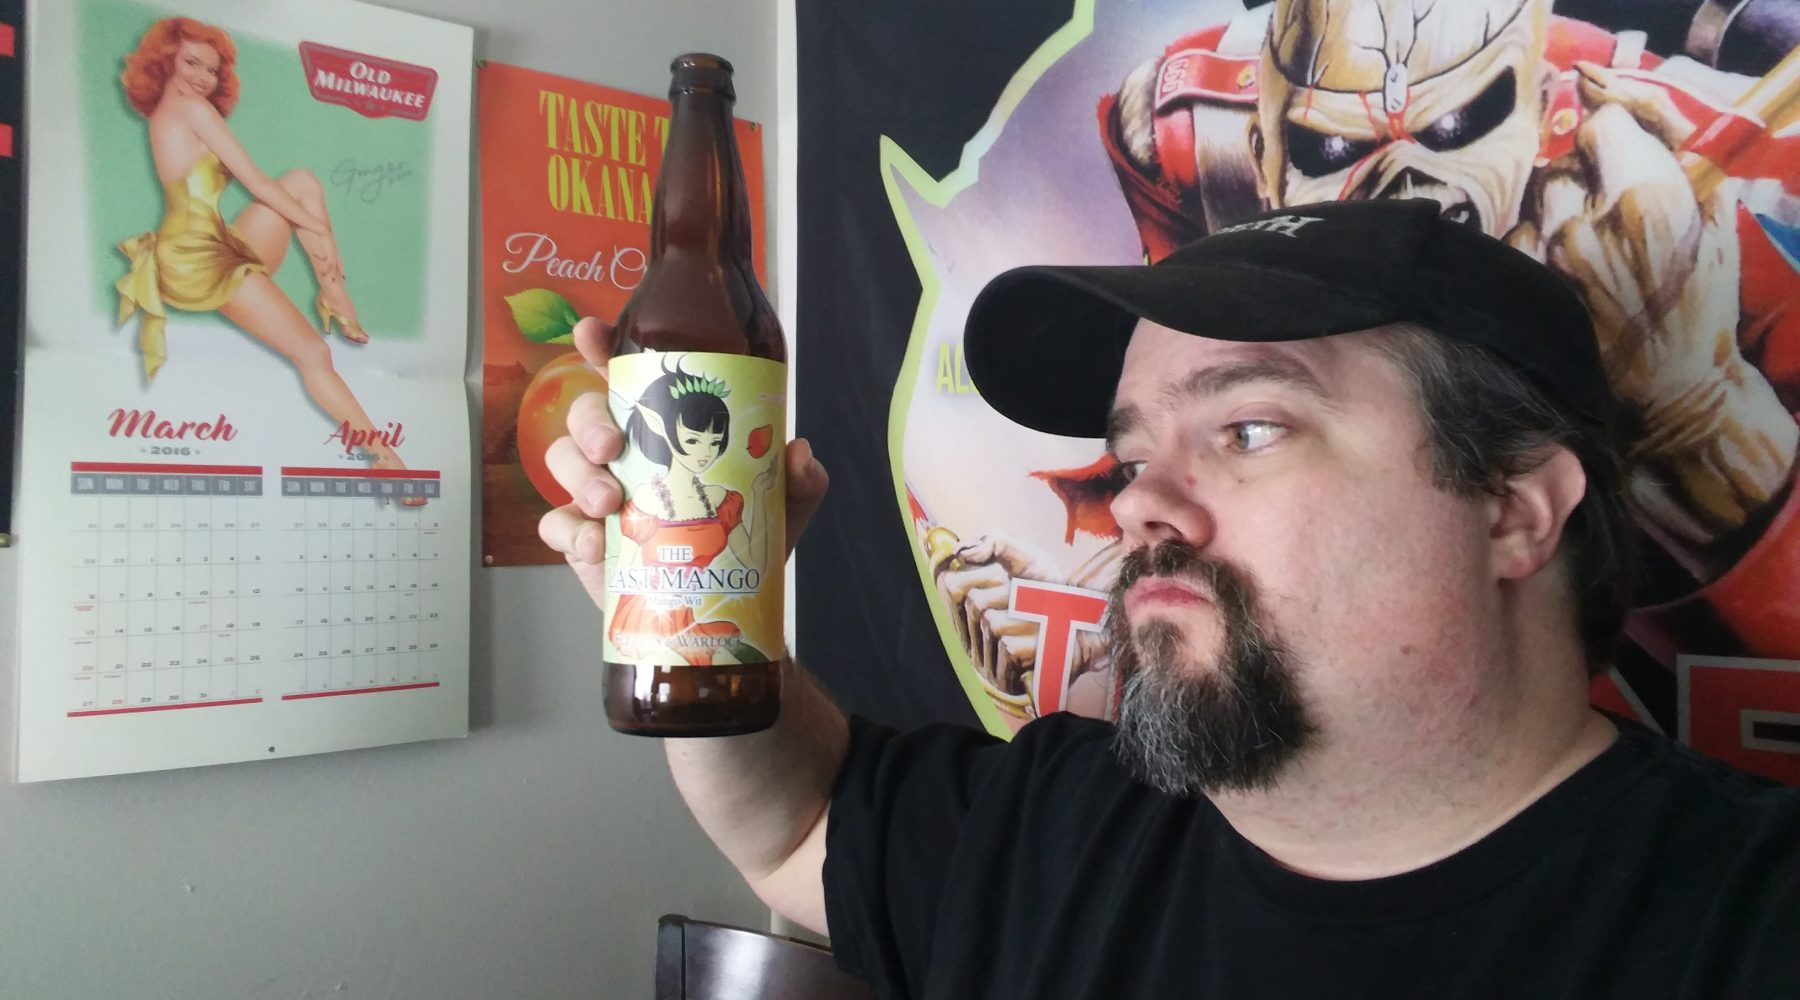 Fuggles and Warlock, The Last Mango Wit Review